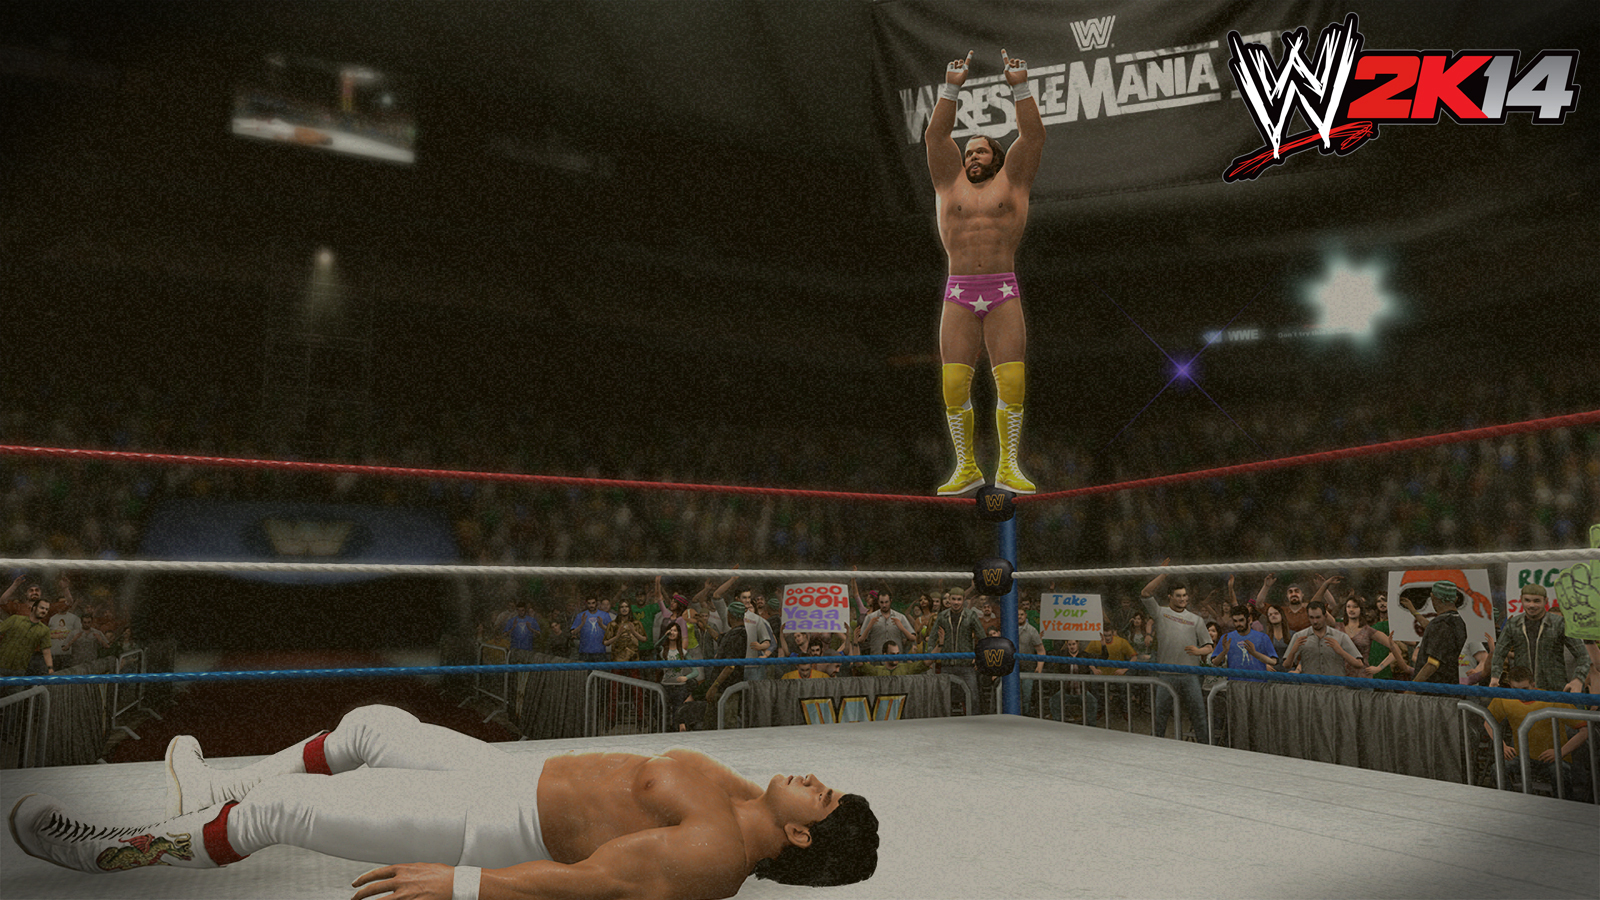 http://downloads.2kgames.com/wwe/site/img/WM03savagesteamboat_091313132SD.jpg